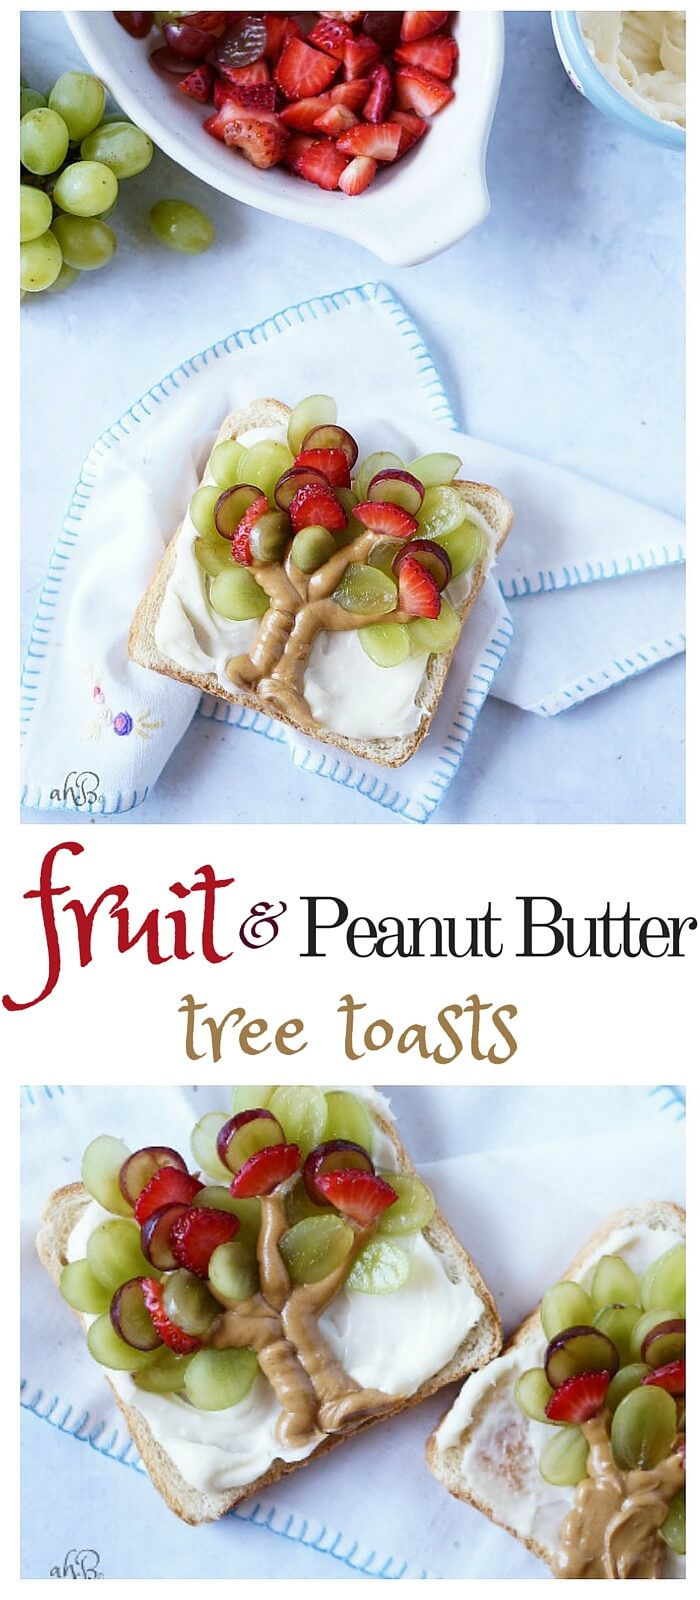 A new twist on PB and J. Fresh fruit, protein, dairy, grain, served up in a cute way your kids will love!